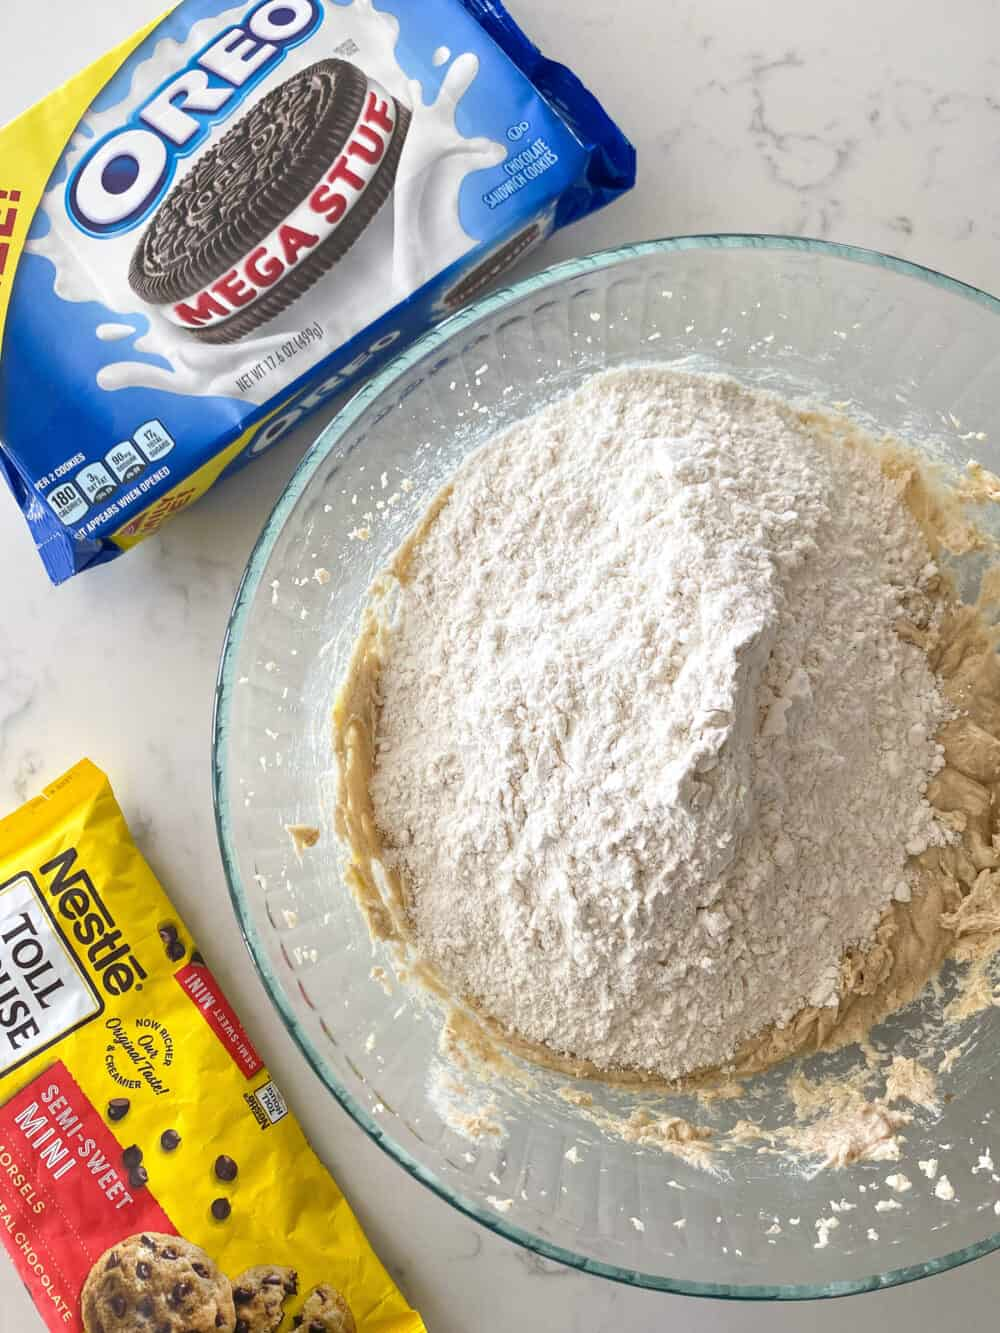 dry ingredients in mixing bowl for oreo stuffed chocolate chip cookies